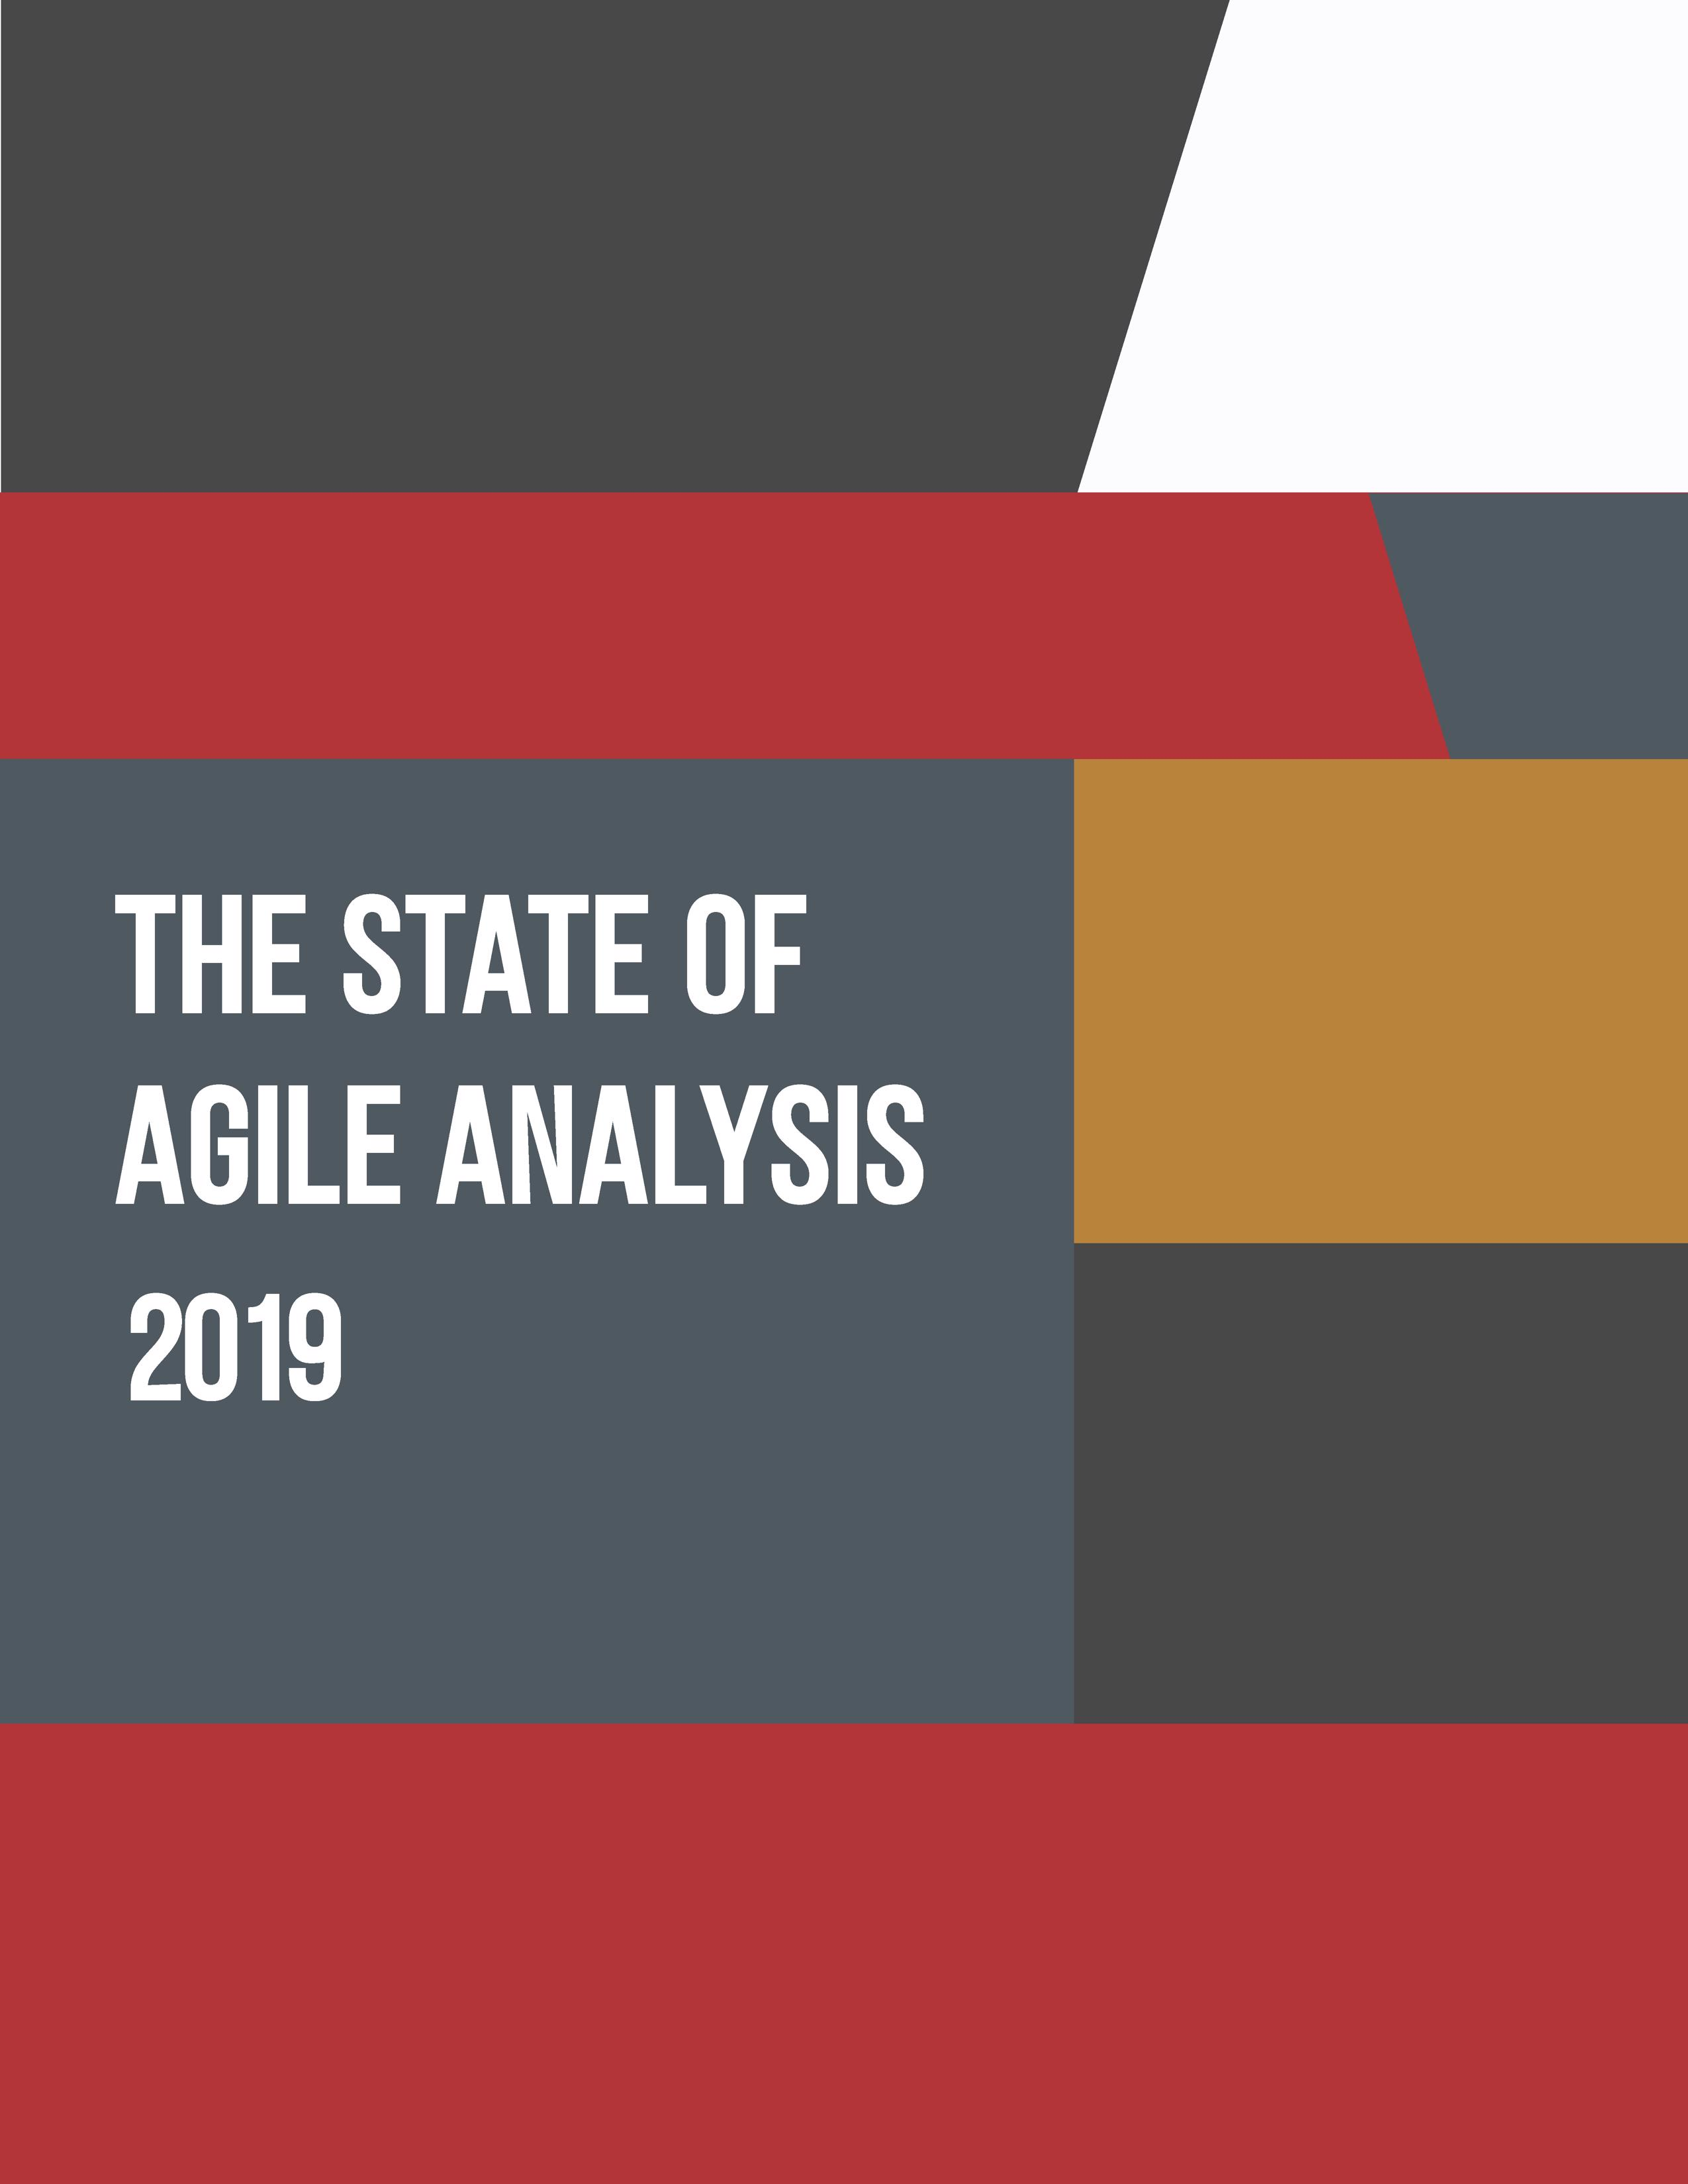 The State of Agile Analysis 2019